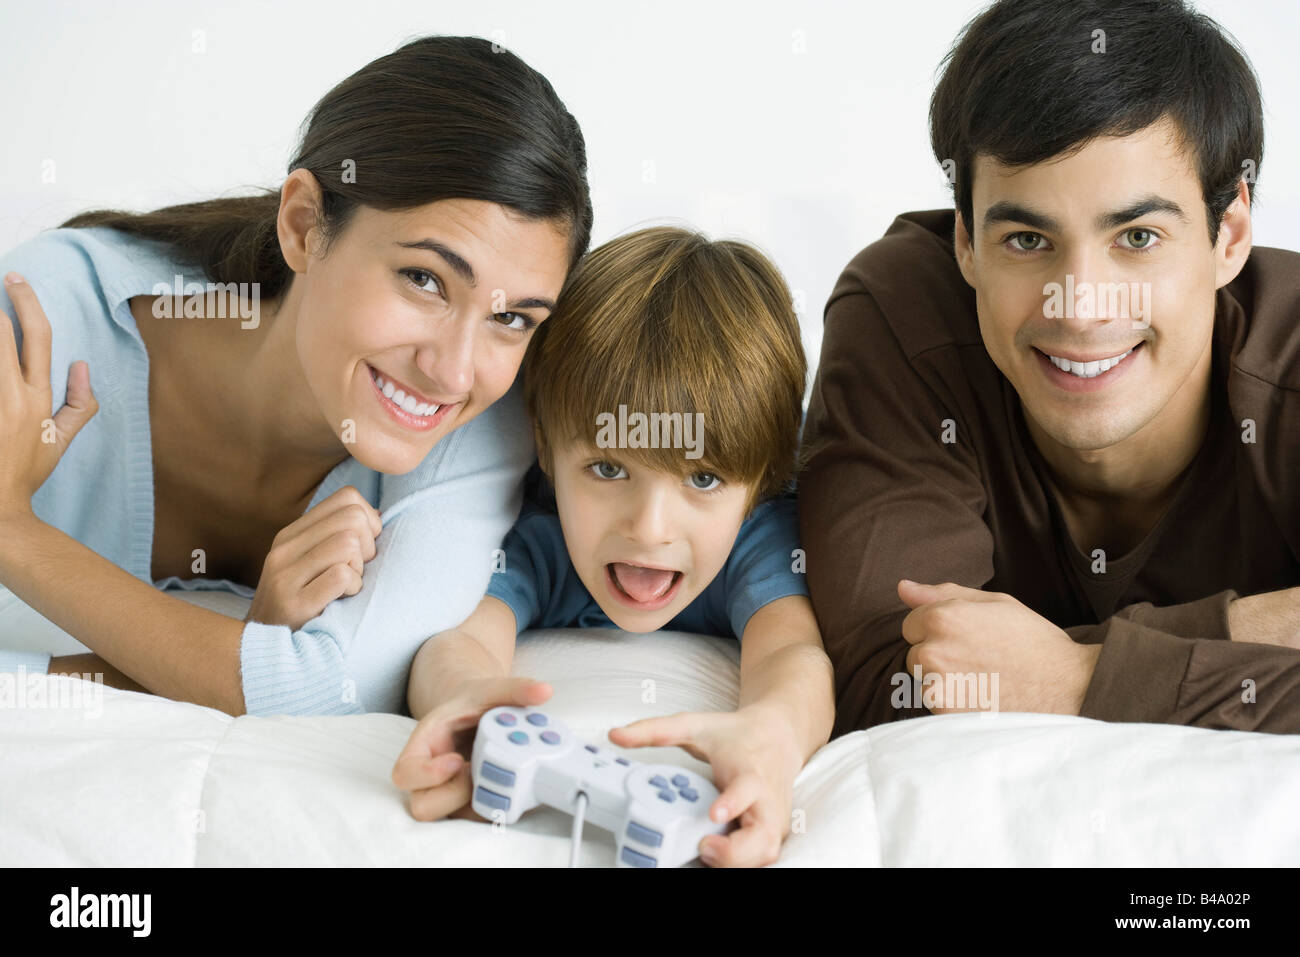 Little boy playing video game, parents watching - Stock Image